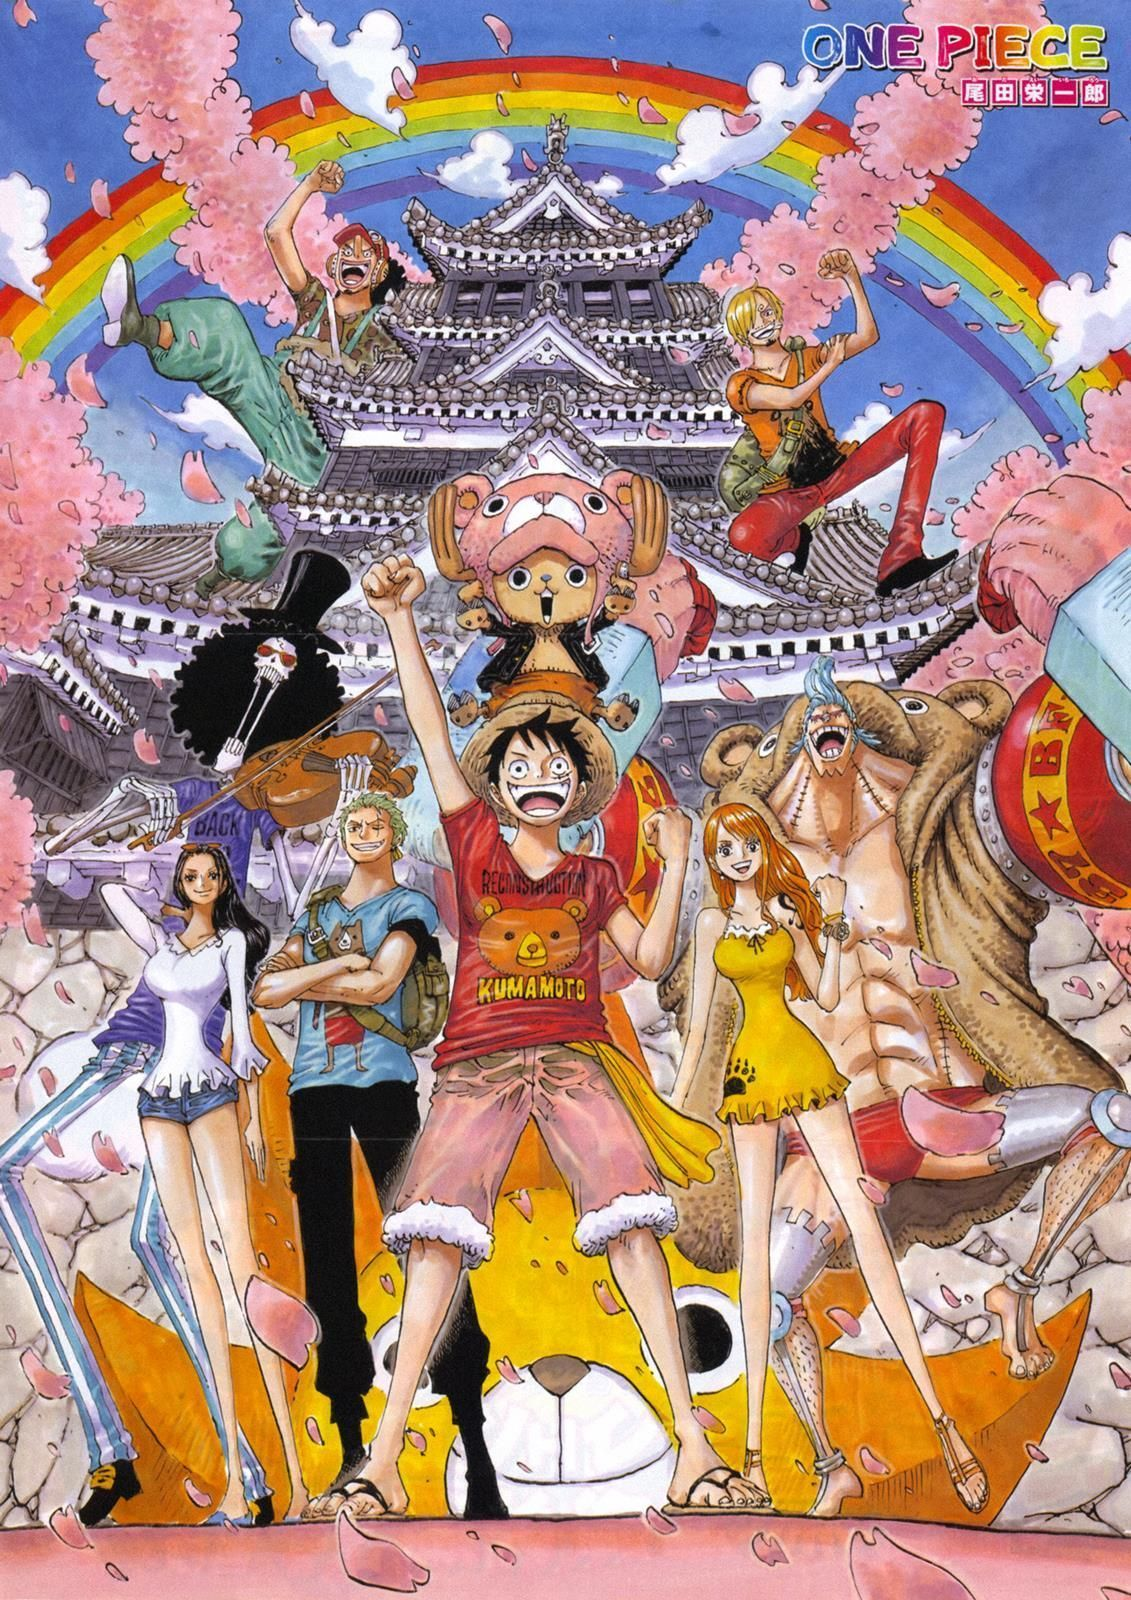 Join One Piece On Thefandome Com And Get Free Access To Advanced Geek Blogging Thefandome Geek Onepiece One Piece Anime One Piece Manga Anime One